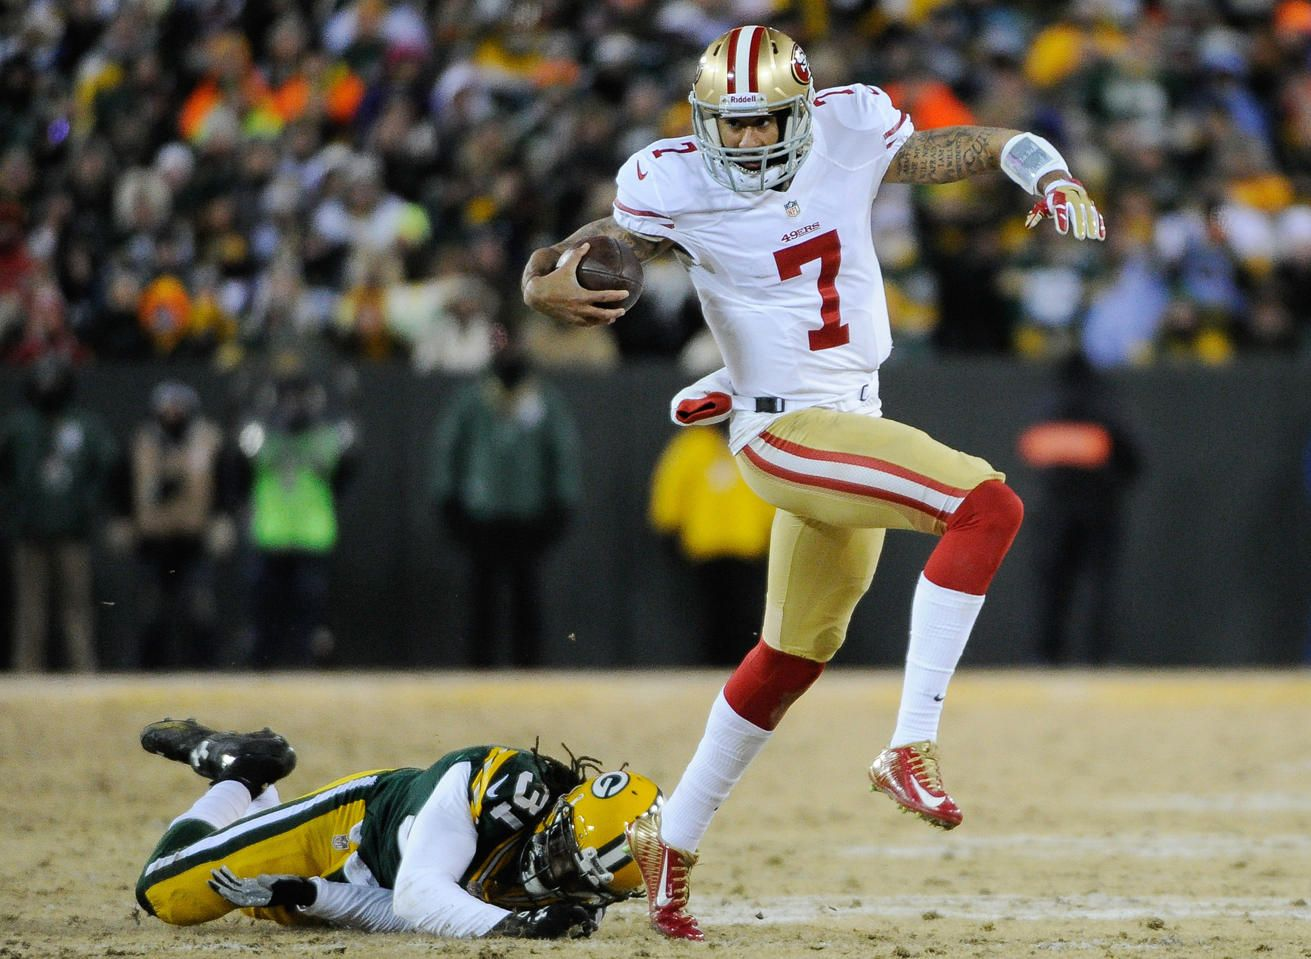 NFC Wildcard Playoff-San Francisco 49ers at Green Bay Packers -- Jan 5, 2014; Green Bay, WI, USA; San Francisco 49ers quarterback Colin Kaepernick (7) runs with the ball past Green Bay Packers cornerback Davon House (31) in the second quarter during the 2013 NFC wild card playoff football game at Lambeau Field. (Benny Sieu-USA TODAY Sports)